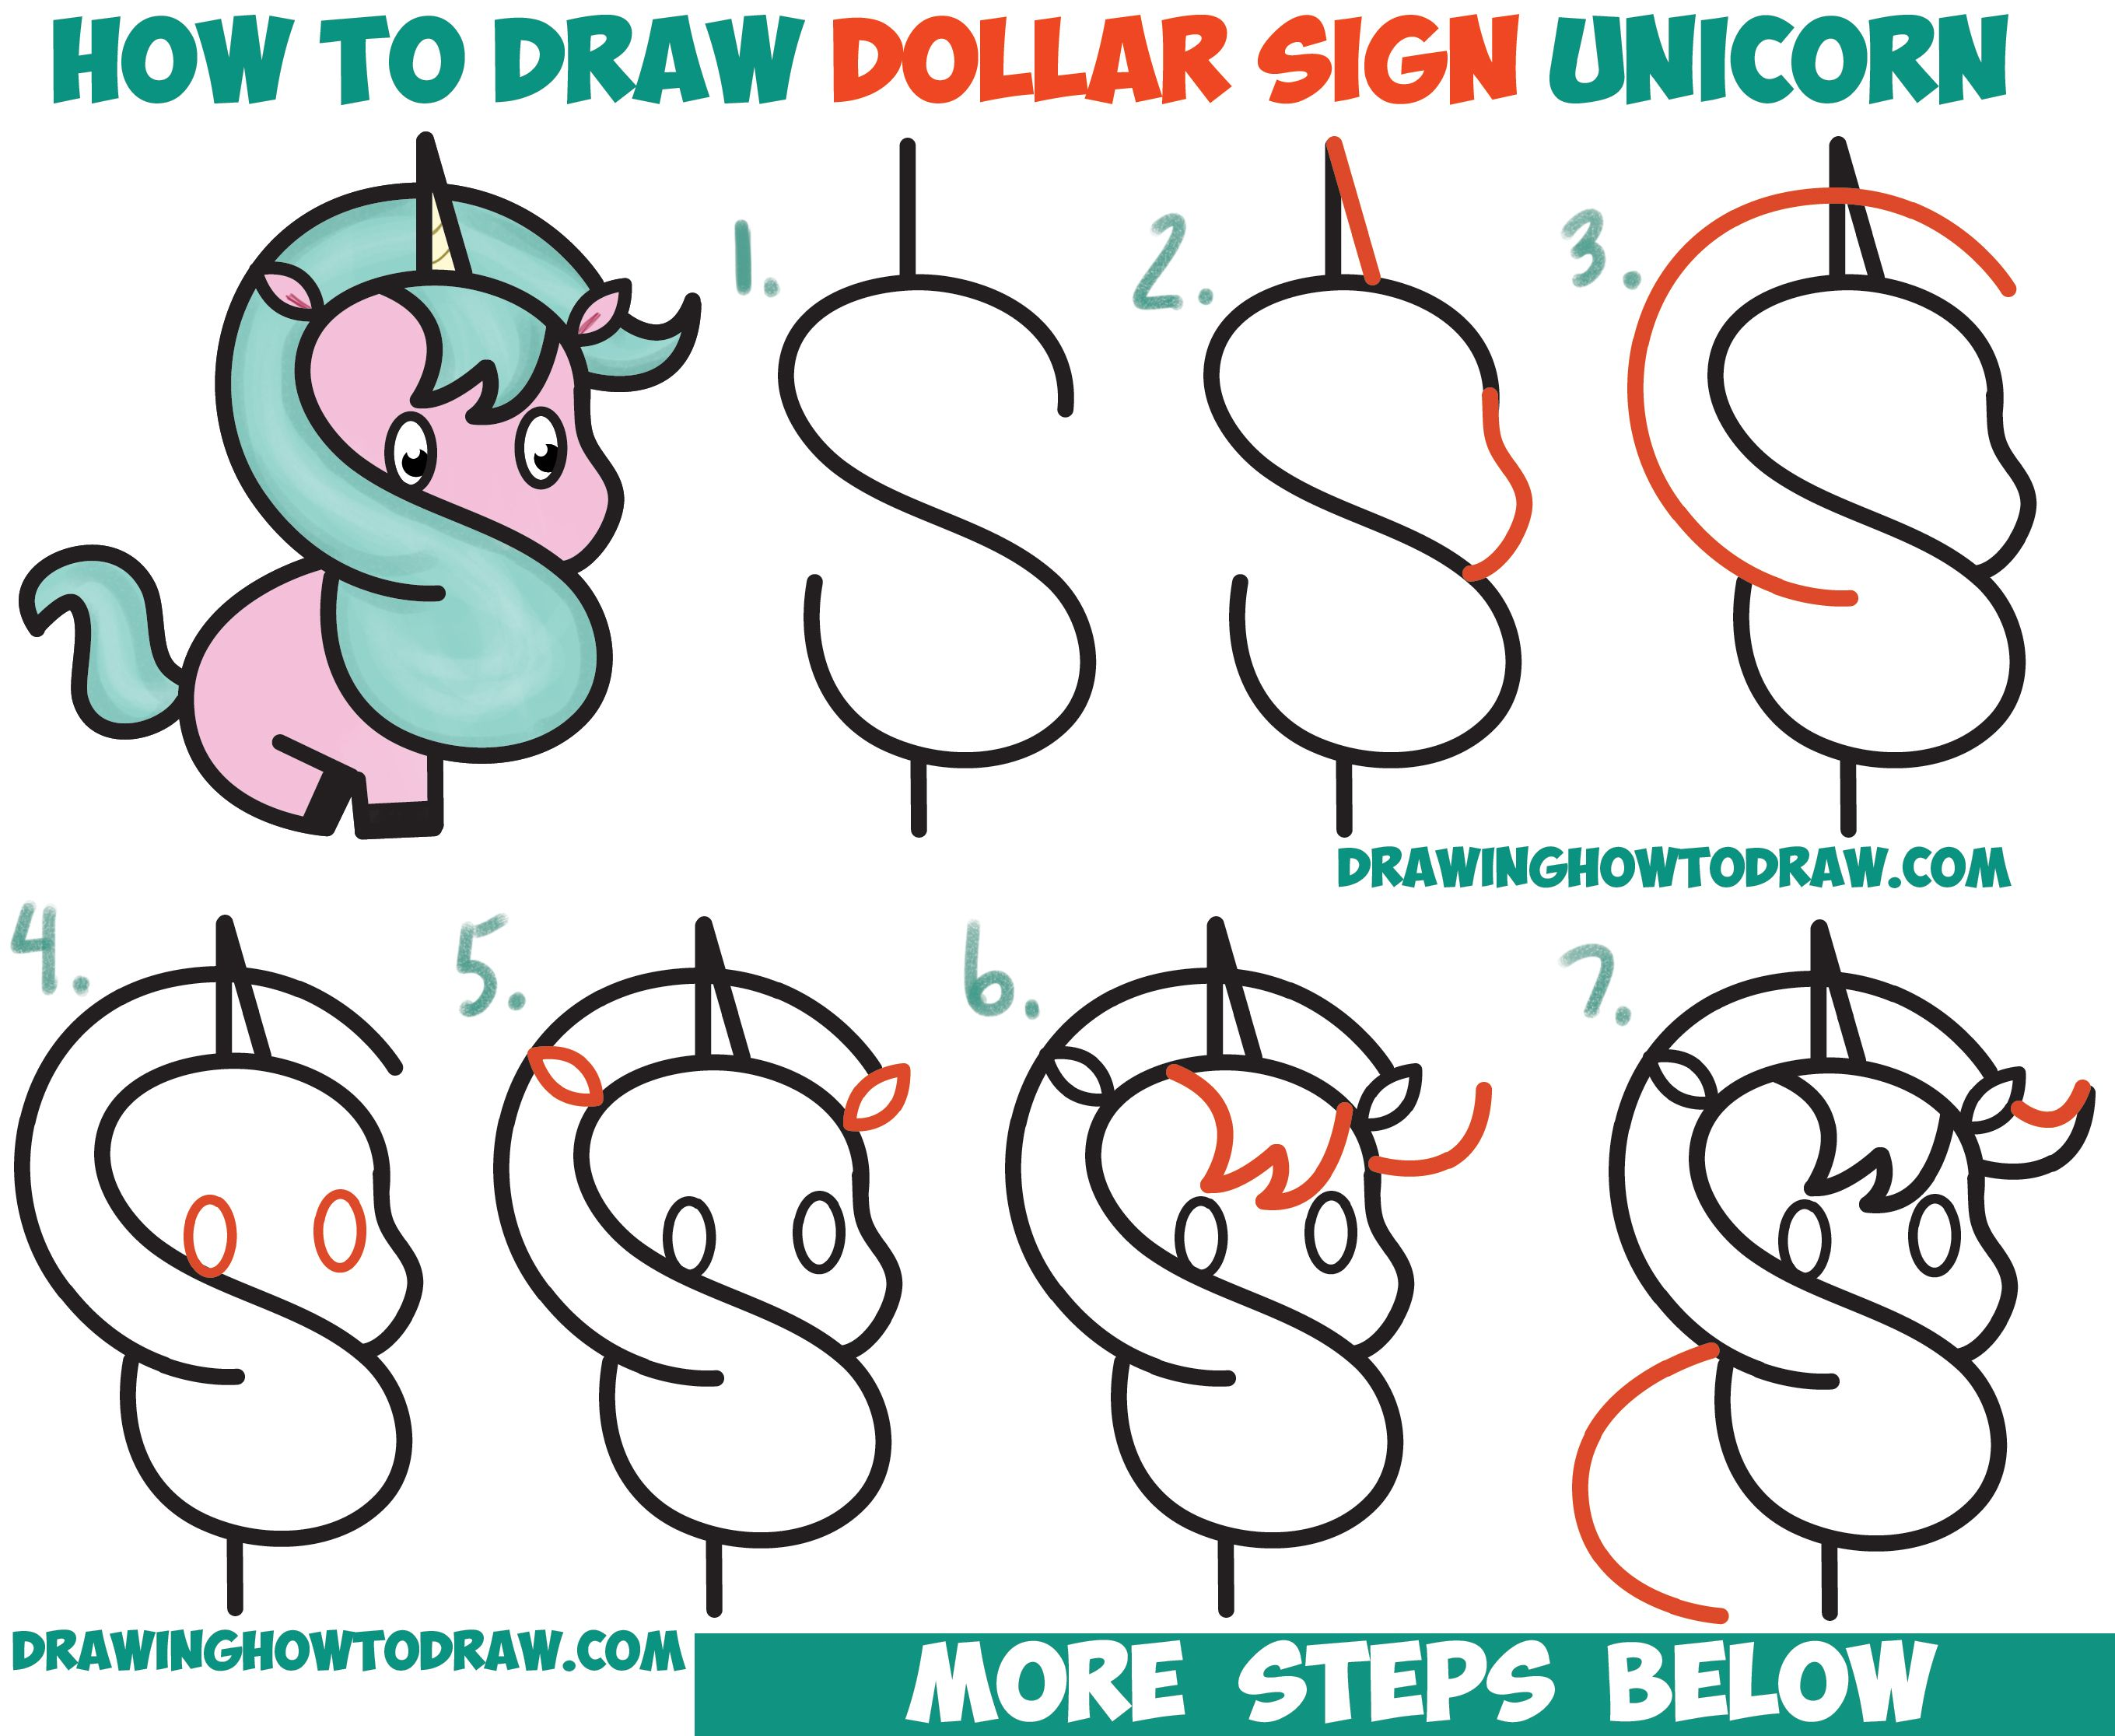 How To Draw A Cute Cartoon Unicorn (Kawaii) From A Dollar